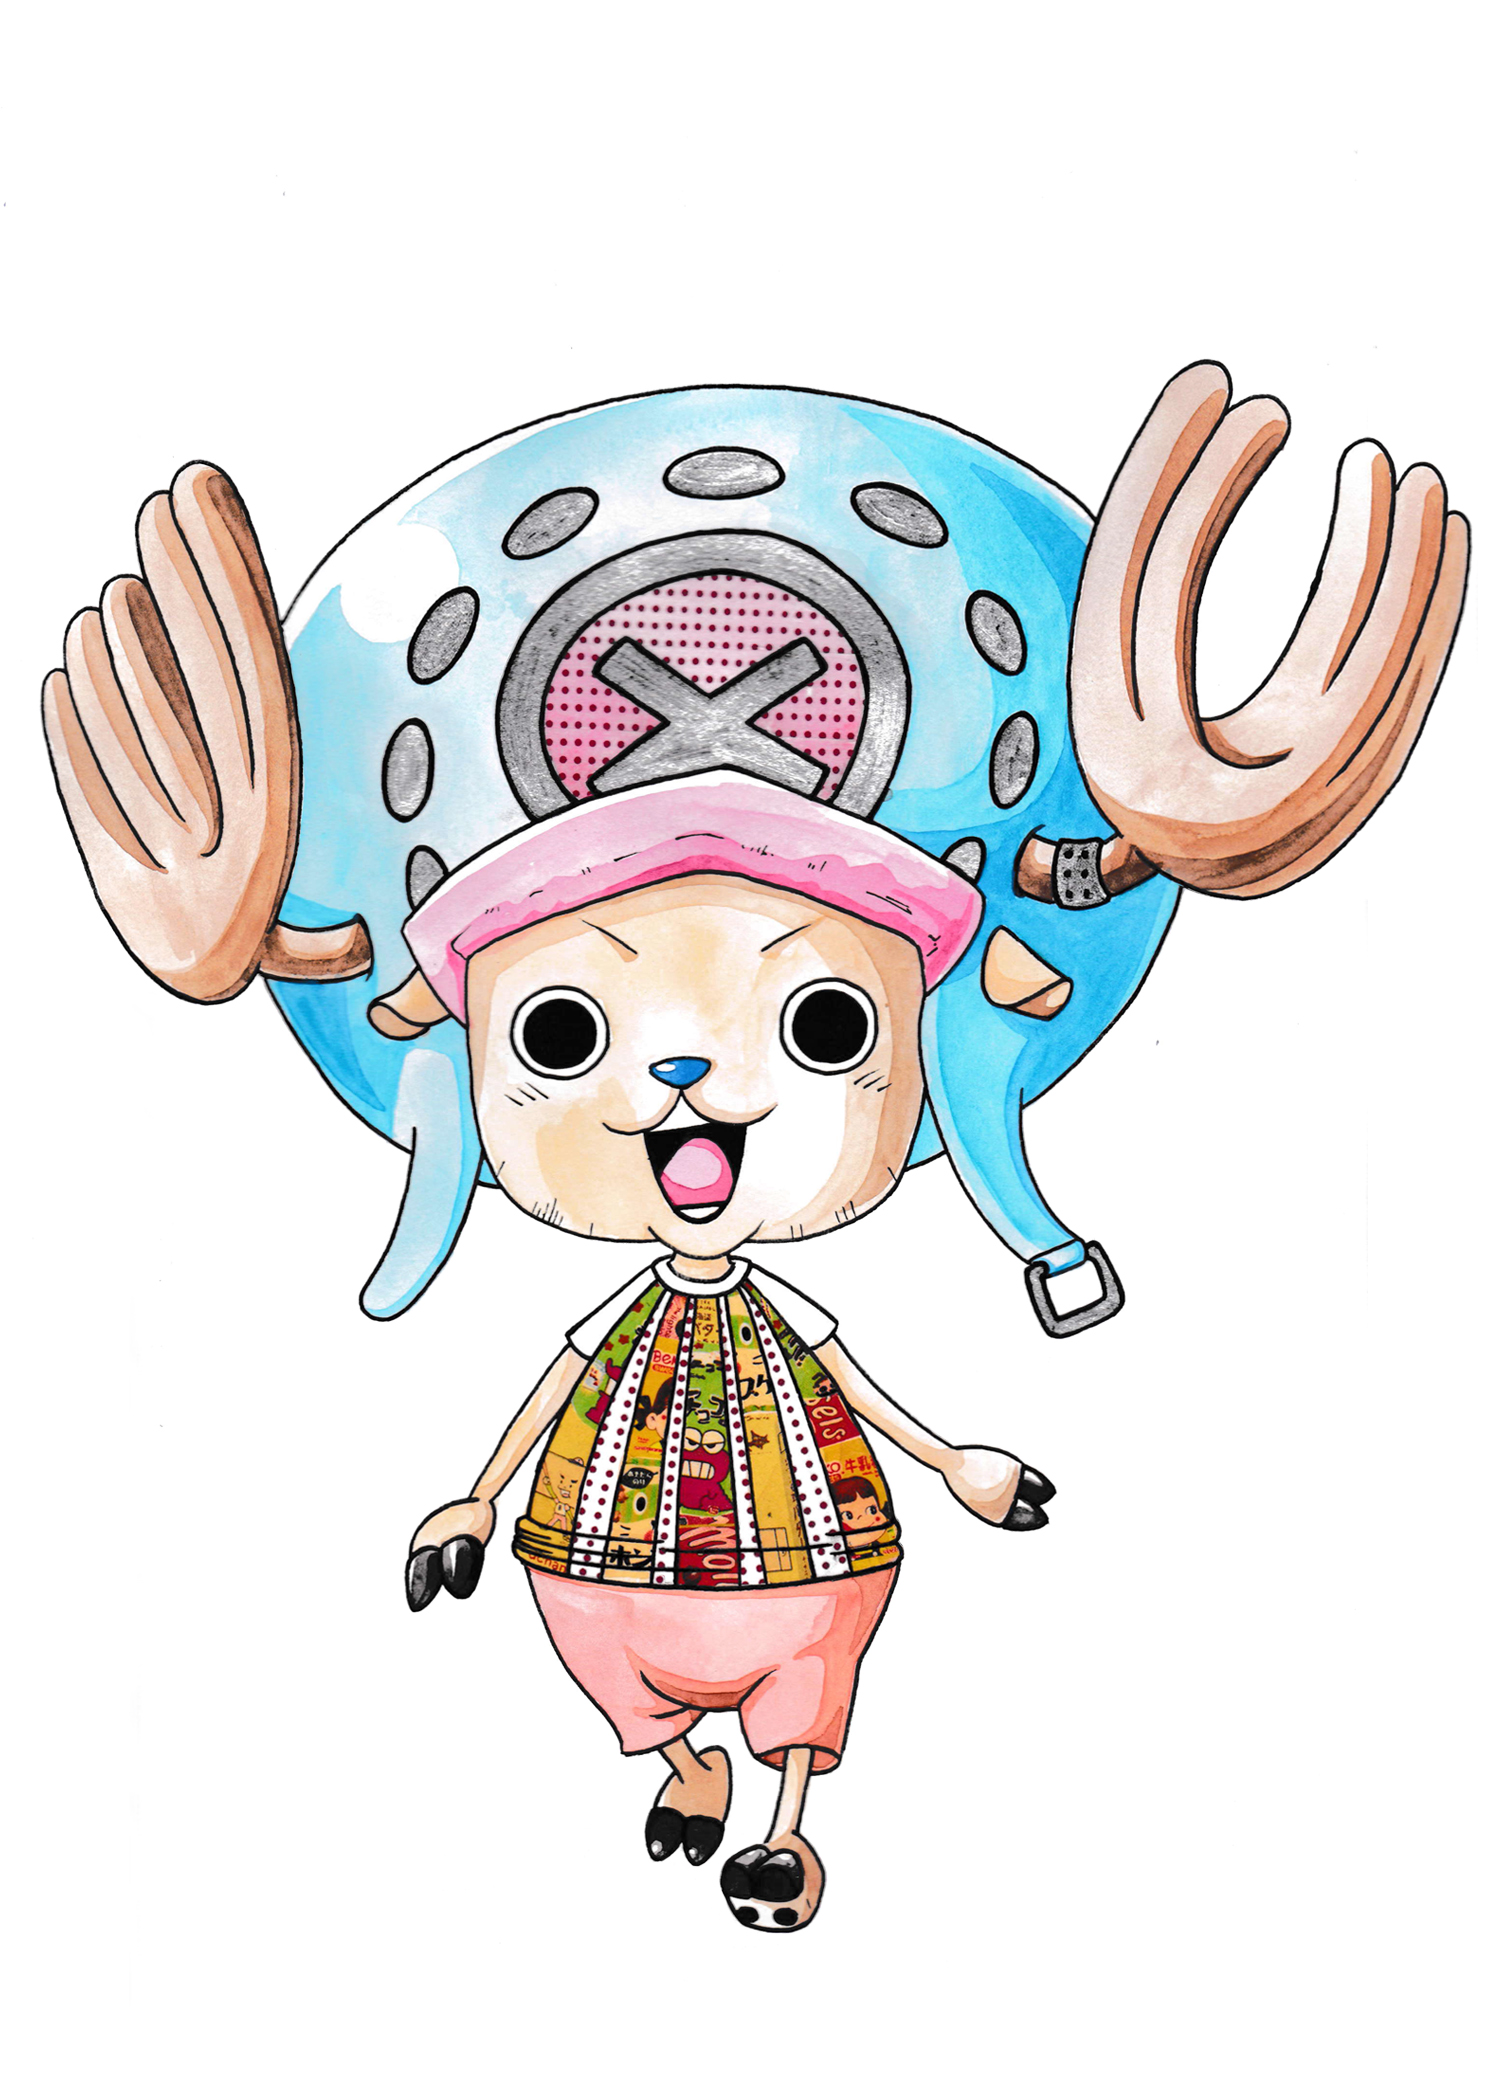 "Tony Tony Chopper - One Piece - Mixed Media - 11"" x 14"" ©ElenaOhlander - 2018"